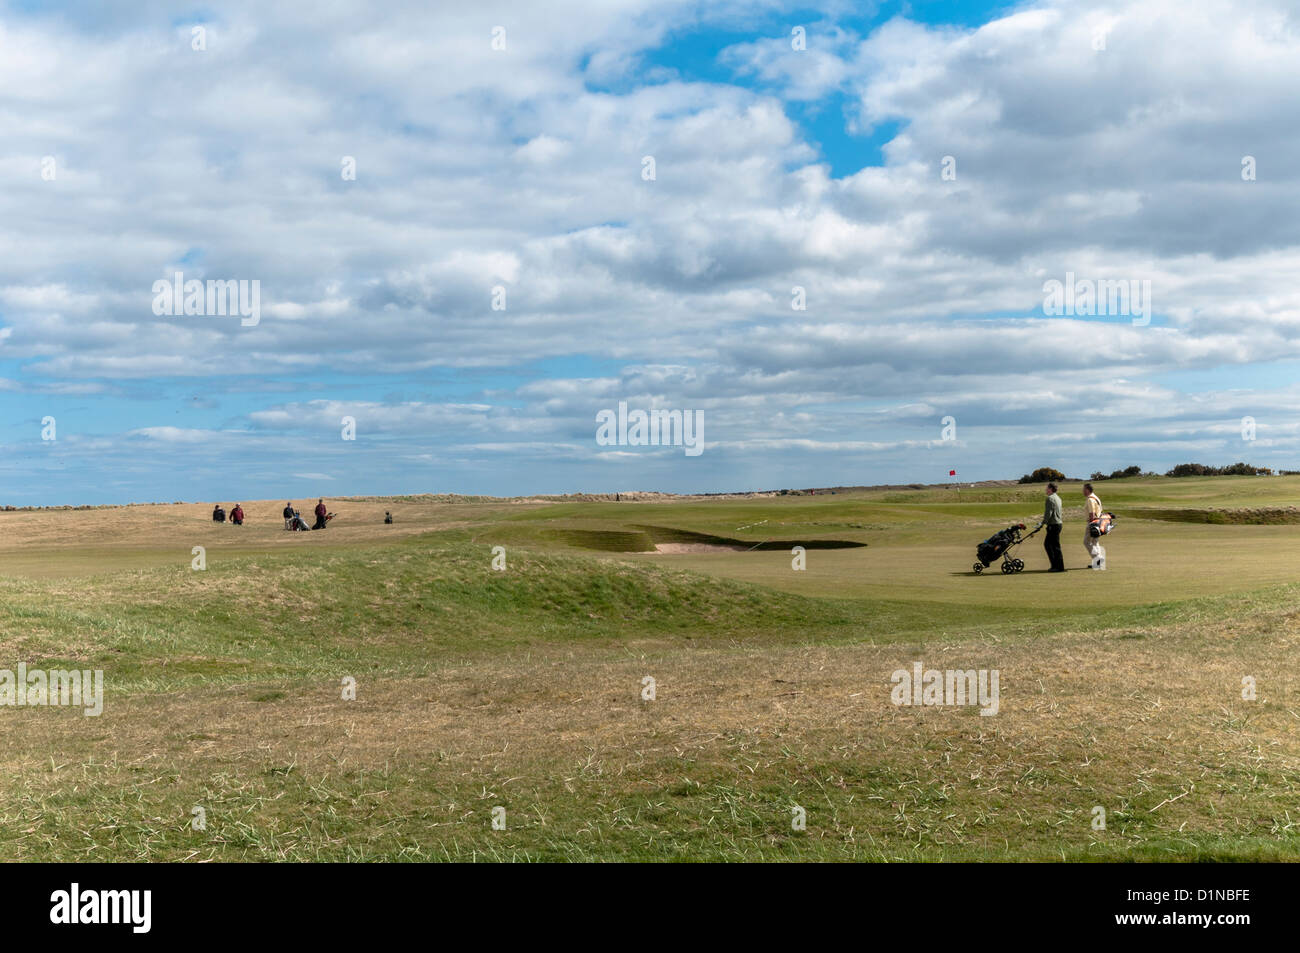 Golf links at Carnoustie Angus Scotland - Stock Image